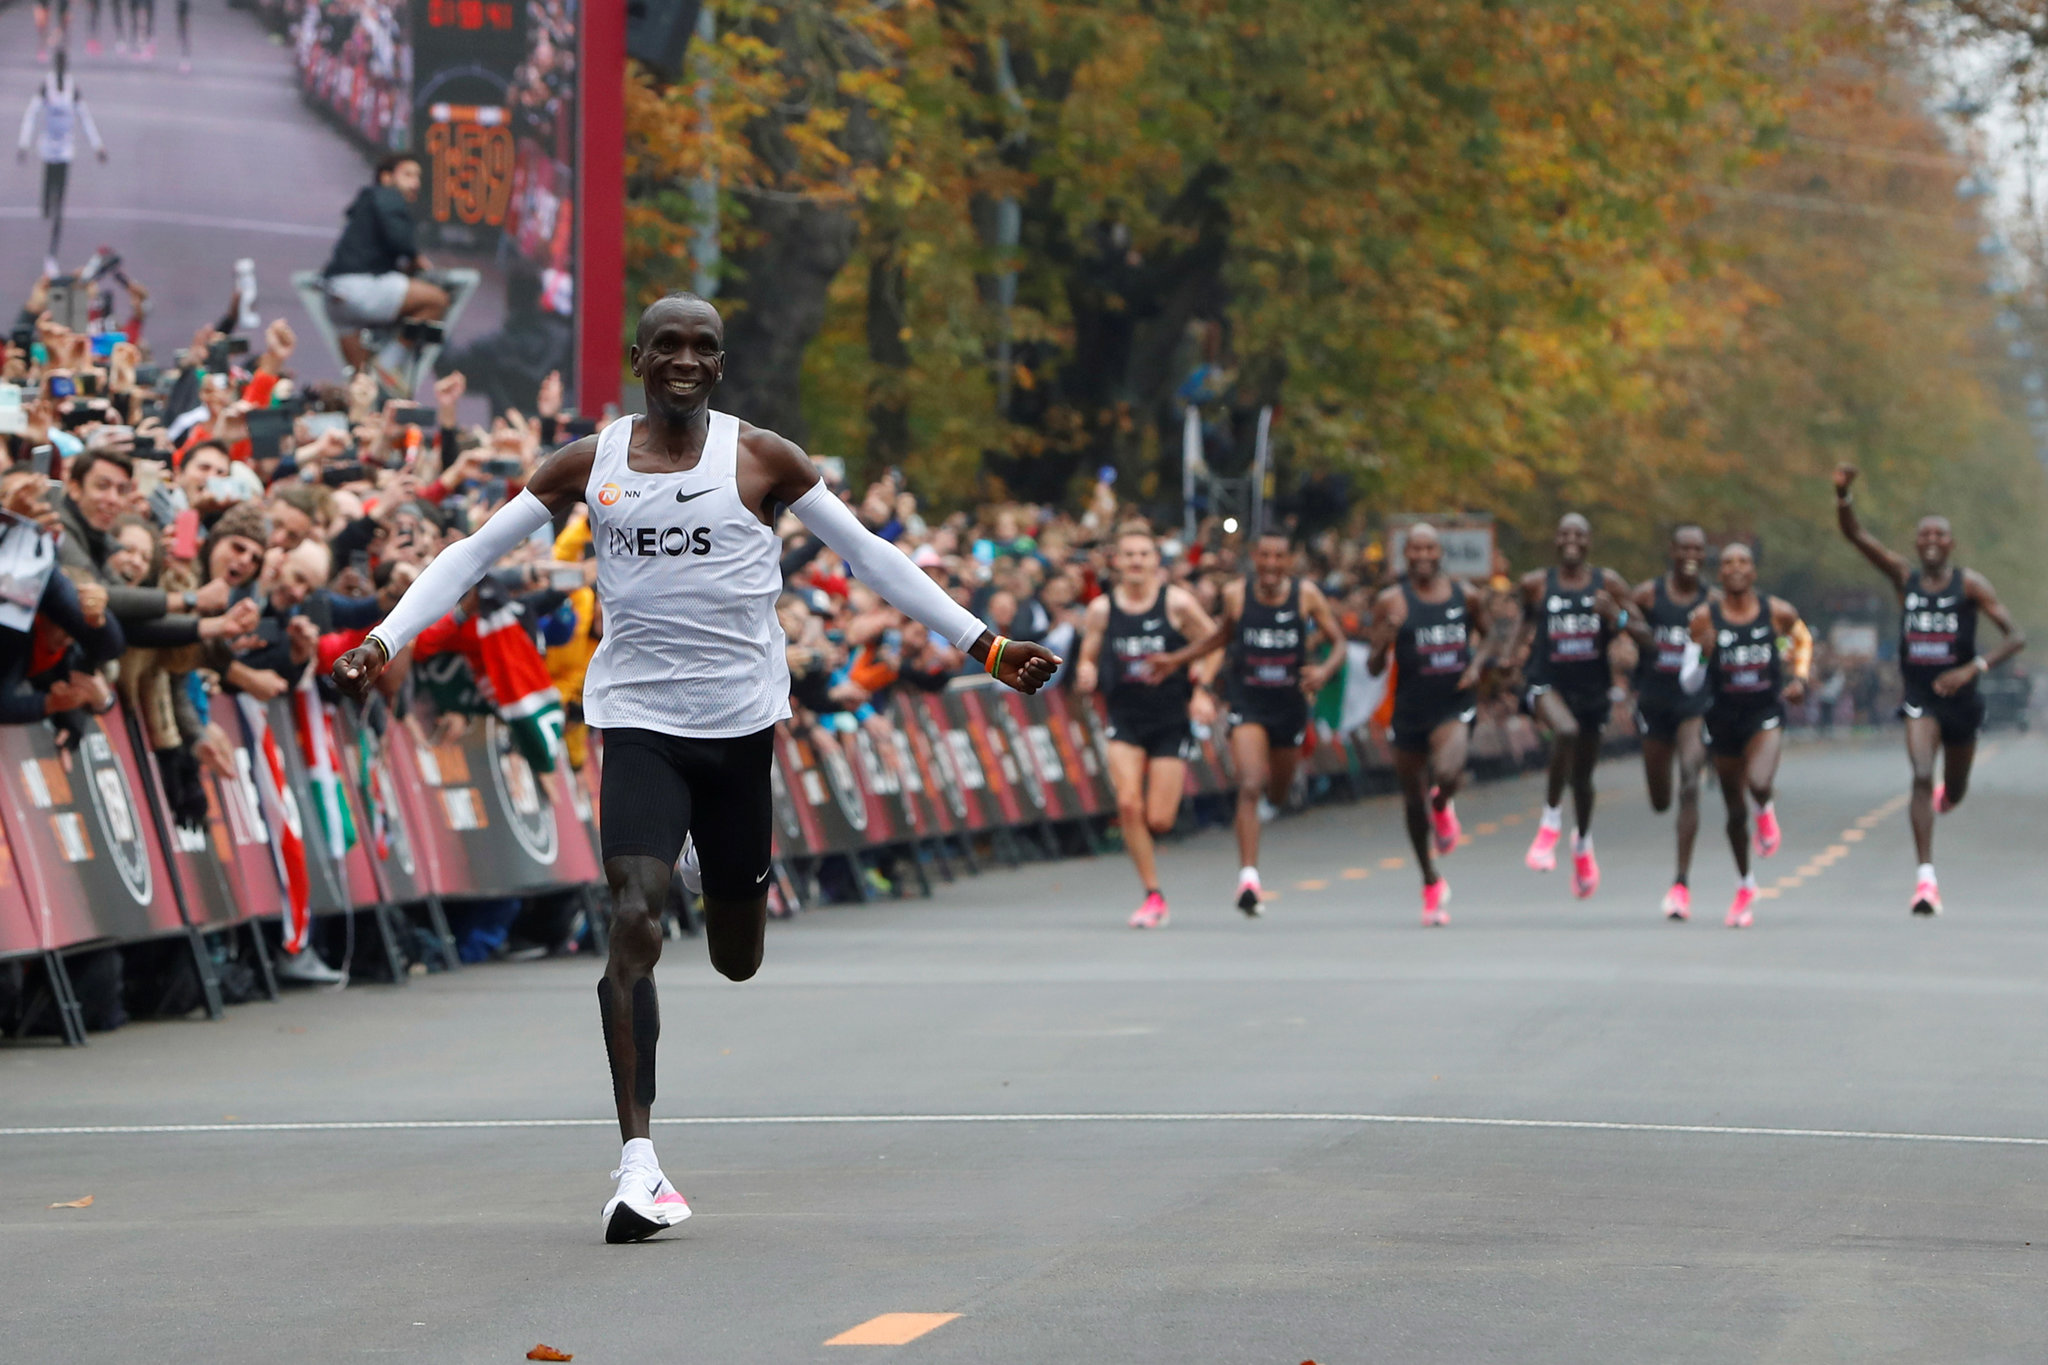 Eliud Kipchoge when he won the INEOS 1:59 challenge in Vienna, Austria on October 12, 2019. |Photo| Courtesy|